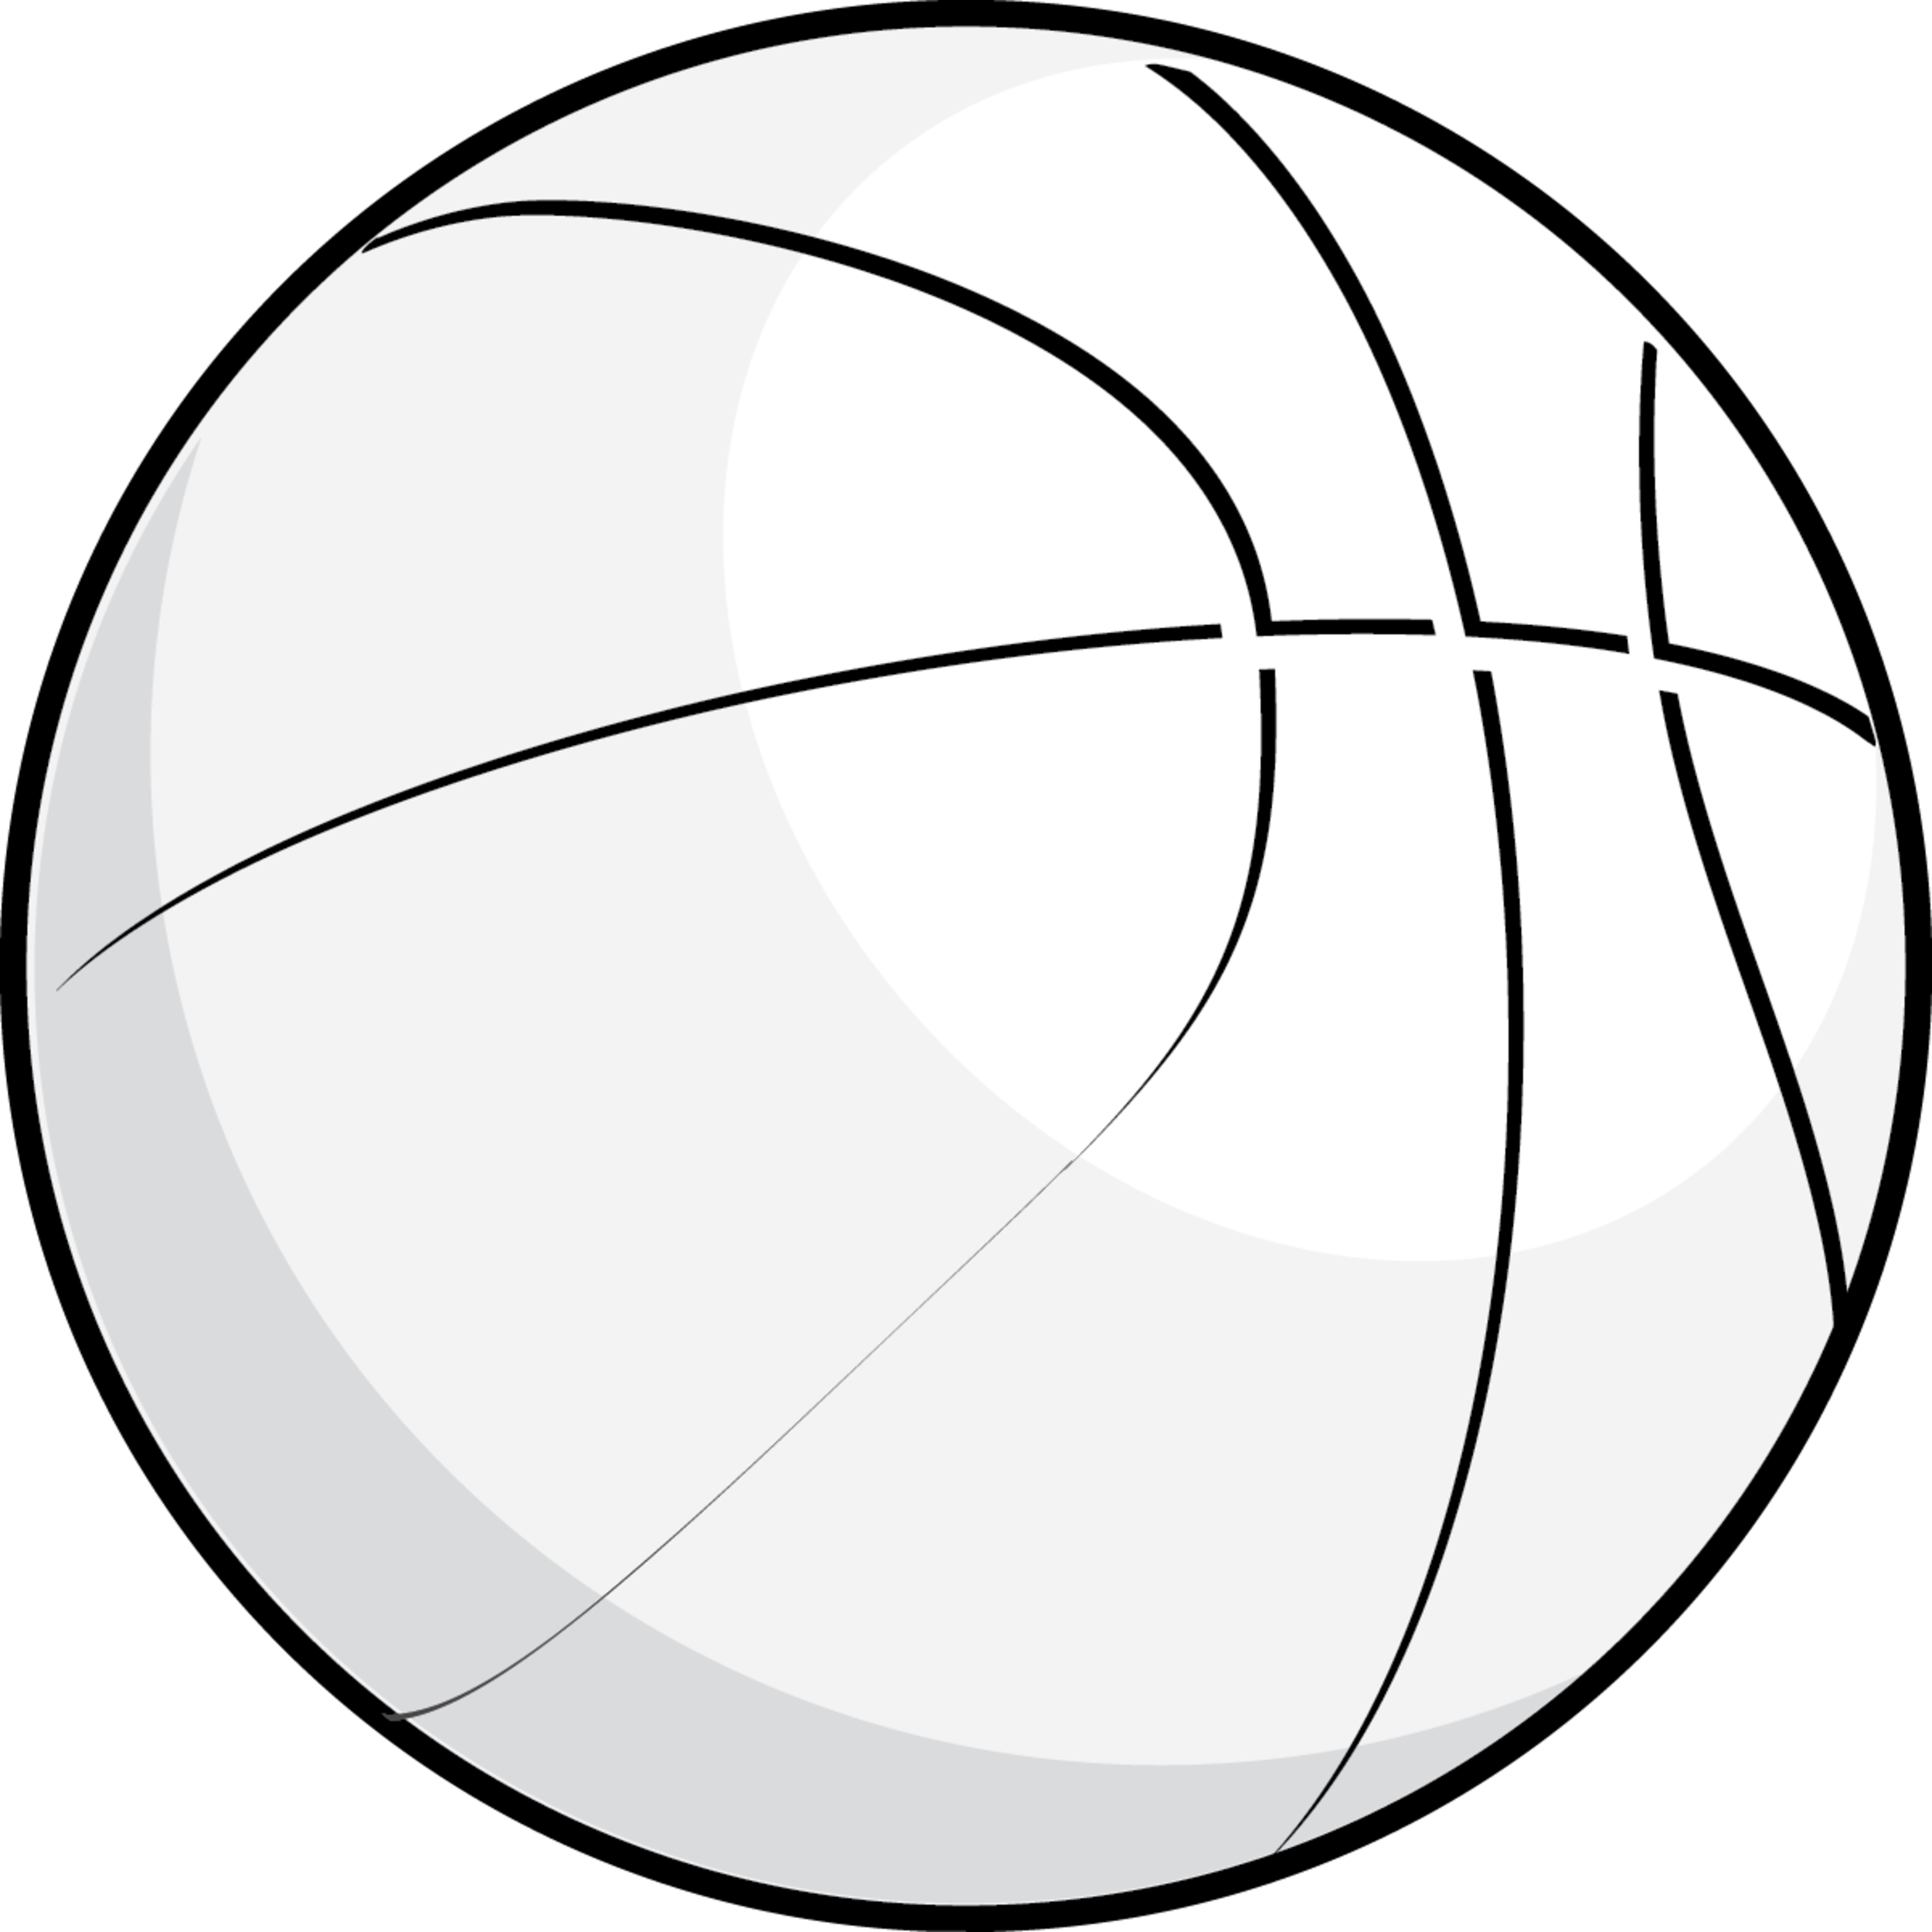 Line clipart basketball And Clipart Clipart And Black